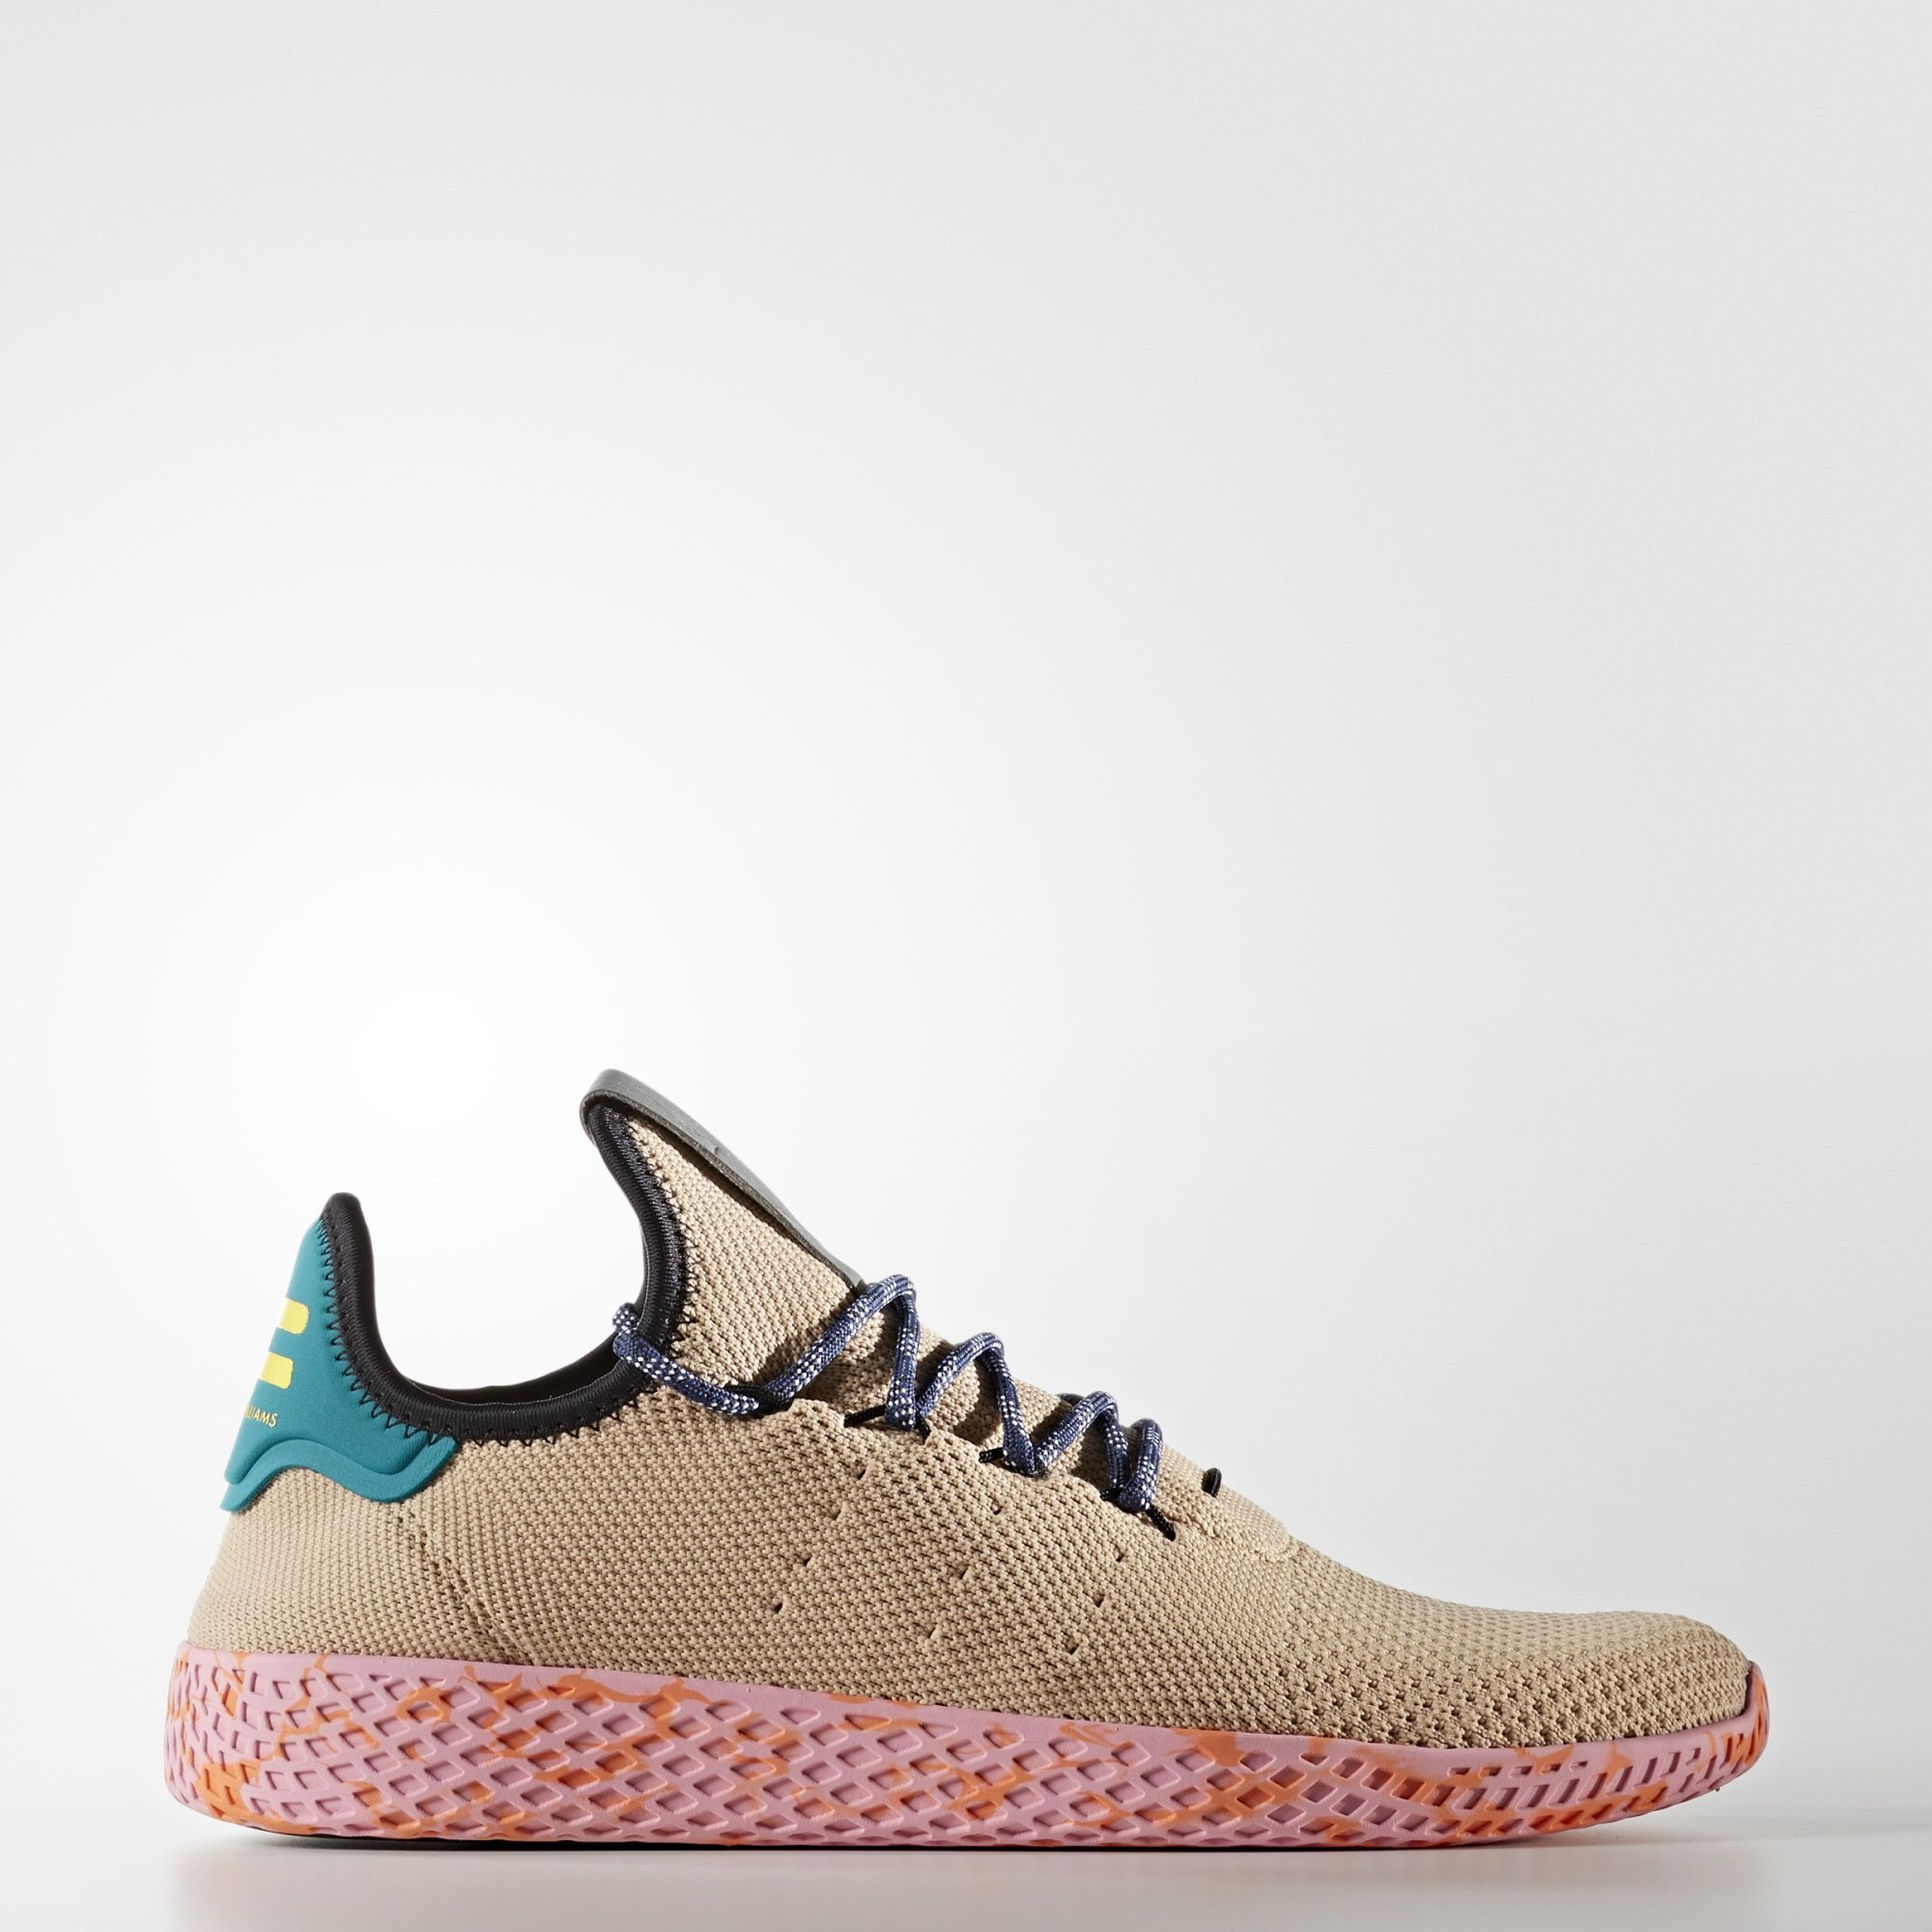 4da641a3f60d0 adidas - Pharrell Williams Tennis Hu Shoes